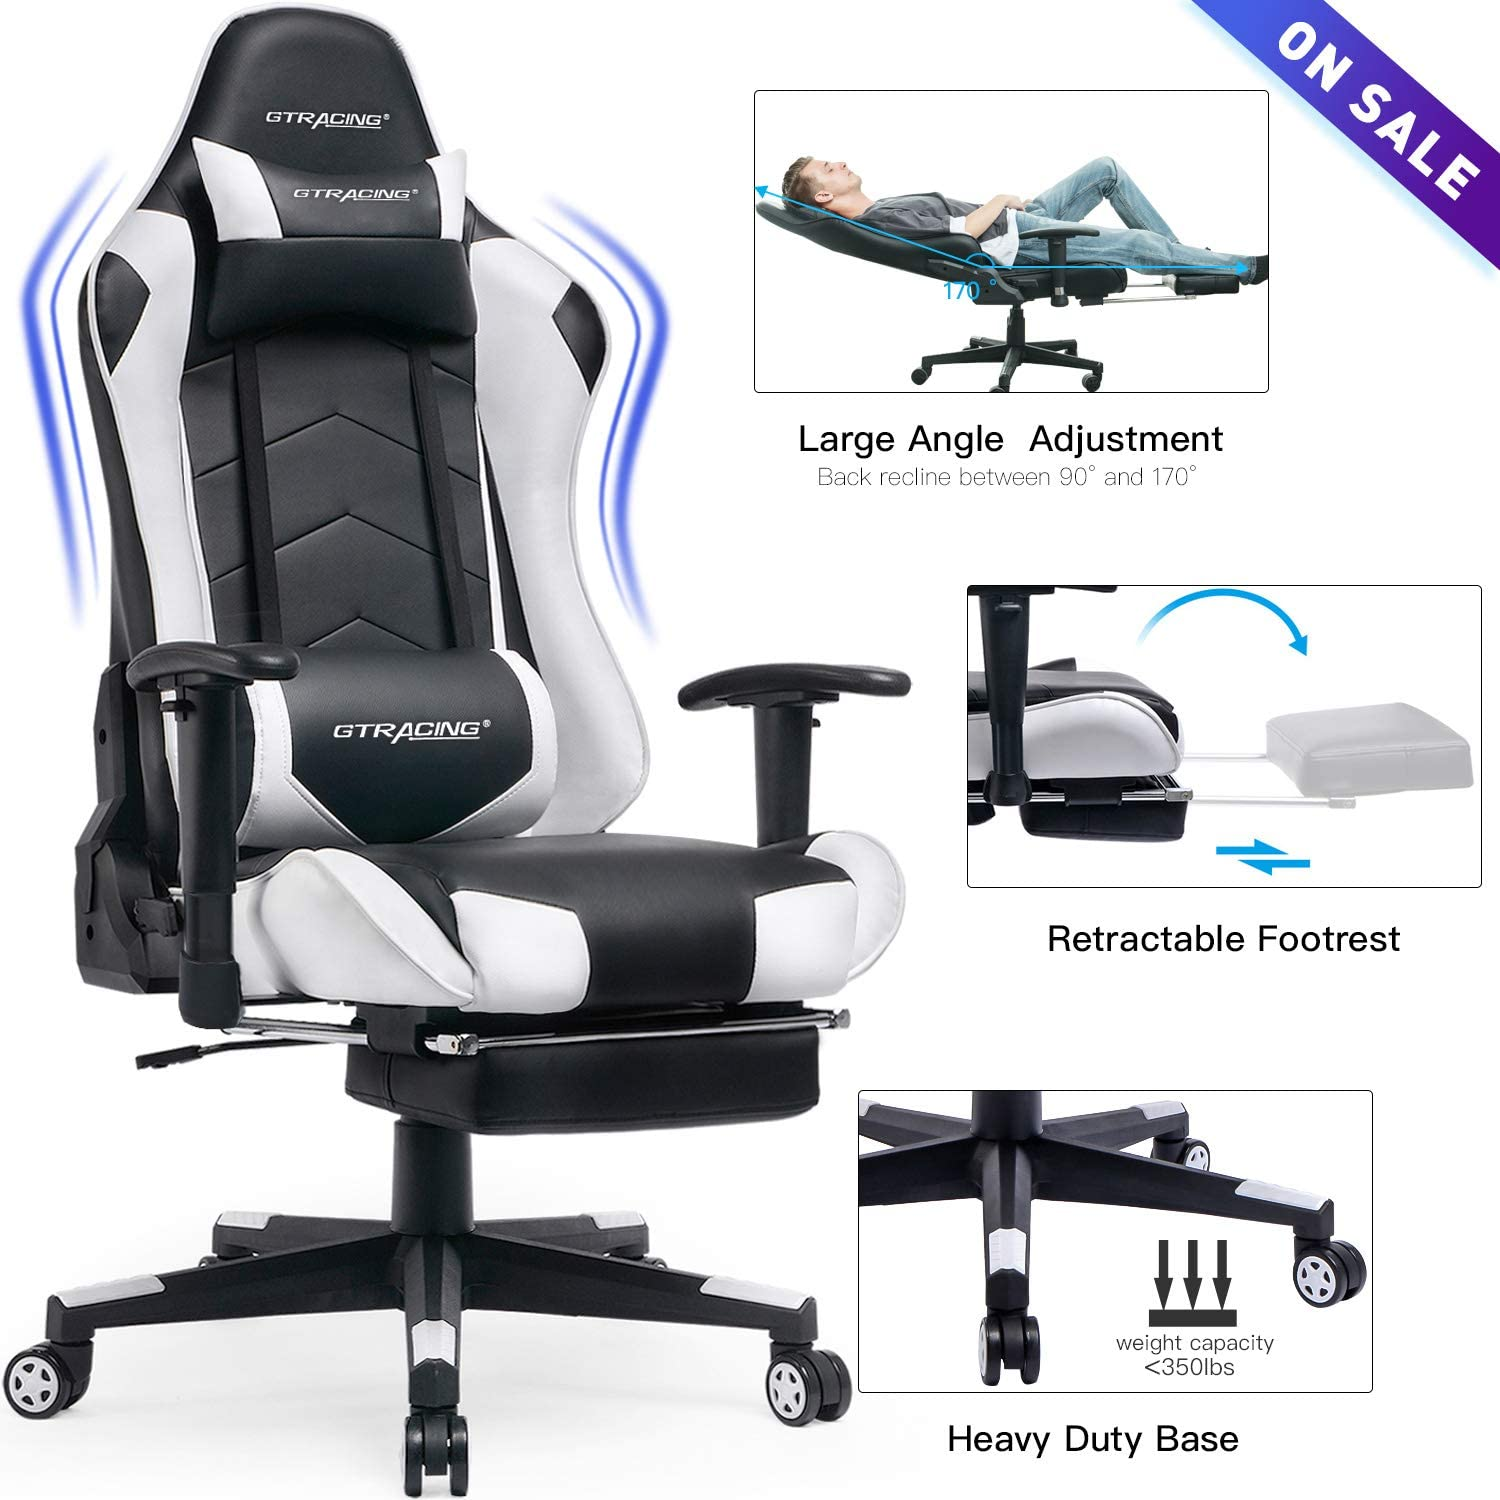 GTRACING Big and Tall Gaming Chair with Footrest Heavy Duty Adjustable Recliner with Headrest Lumbar Support Pillow High Back Ergonomic Leather Racing Computer Desk Executive Office Chair GT901 White